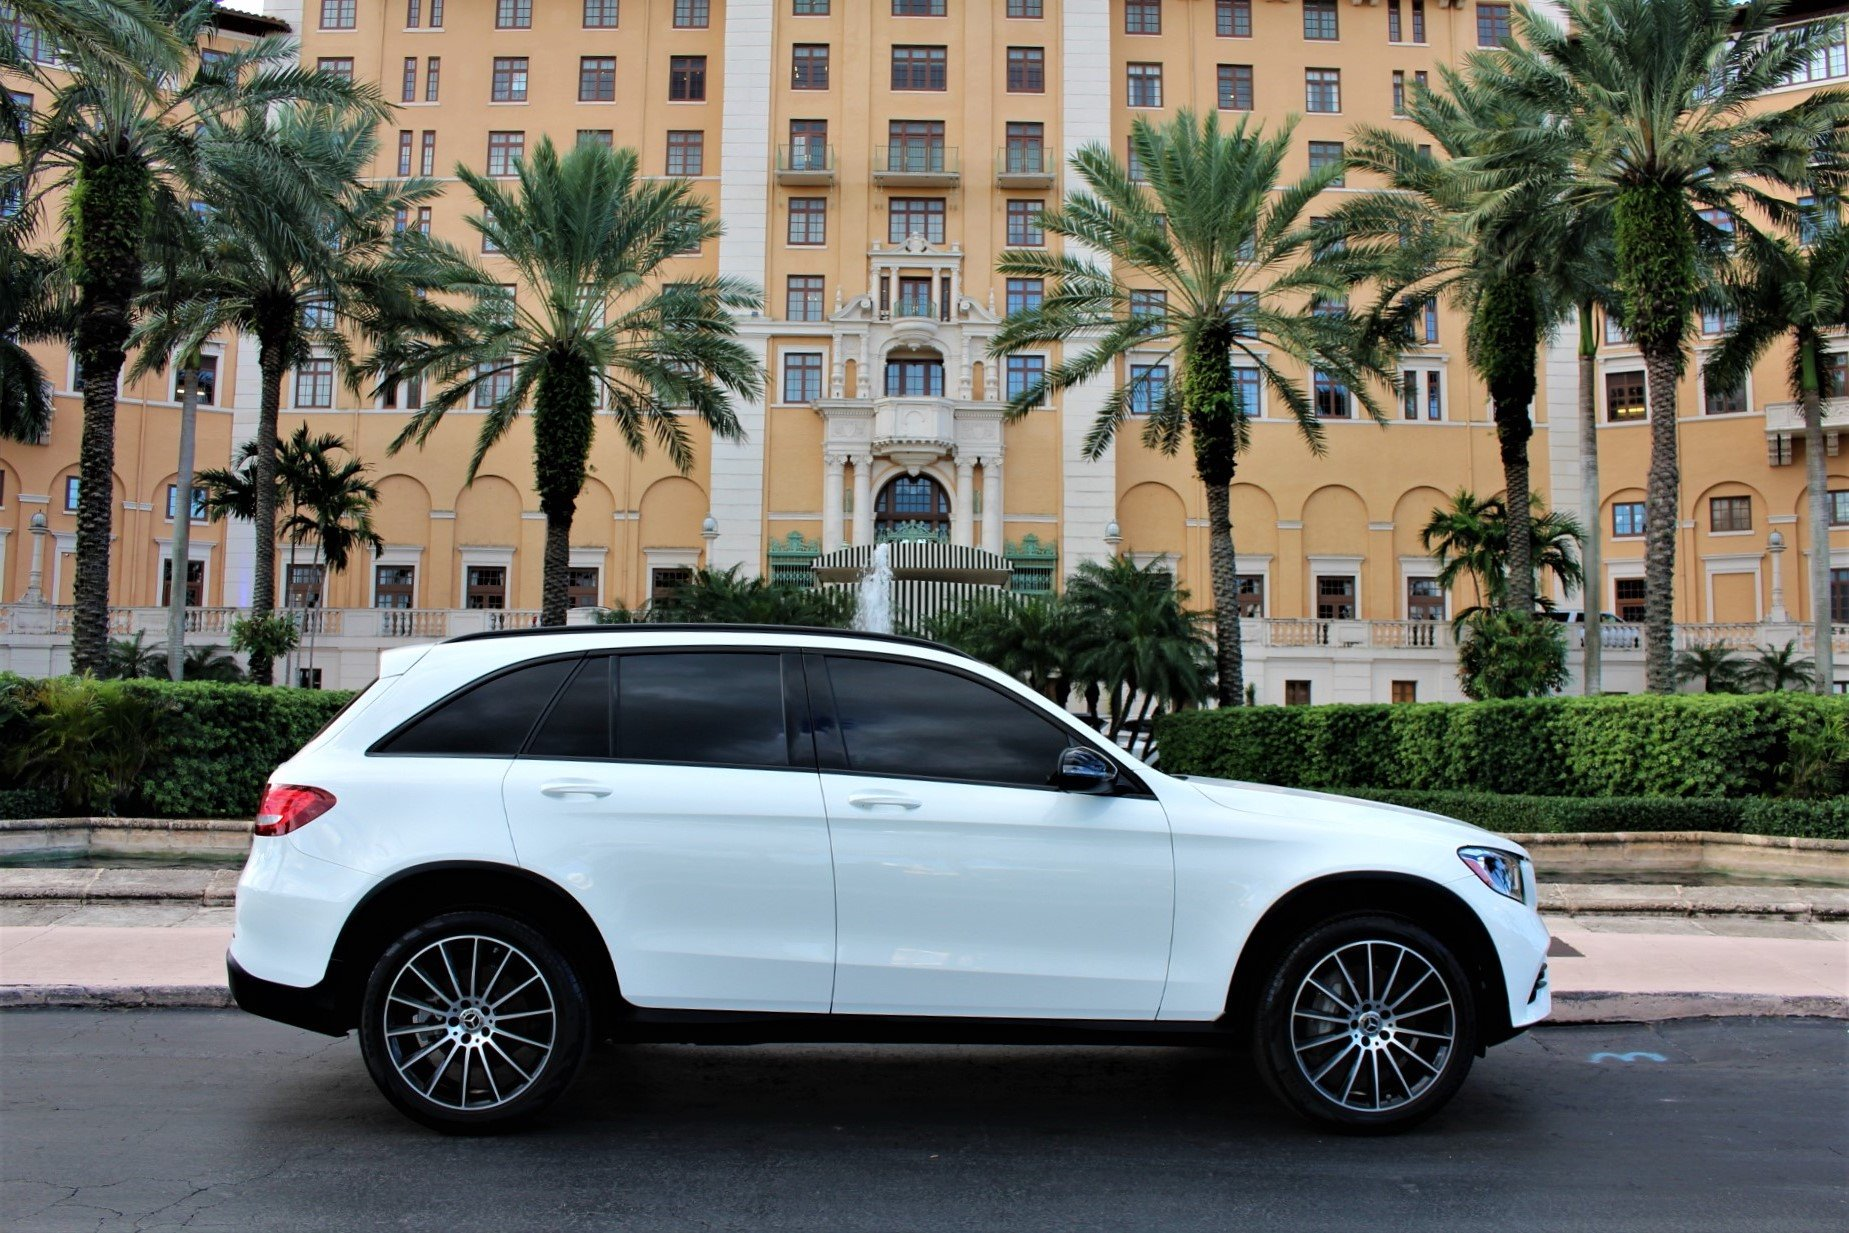 Used 2019 Mercedes-Benz GLC GLC 300 for sale $36,850 at The Gables Sports Cars in Miami FL 33146 1